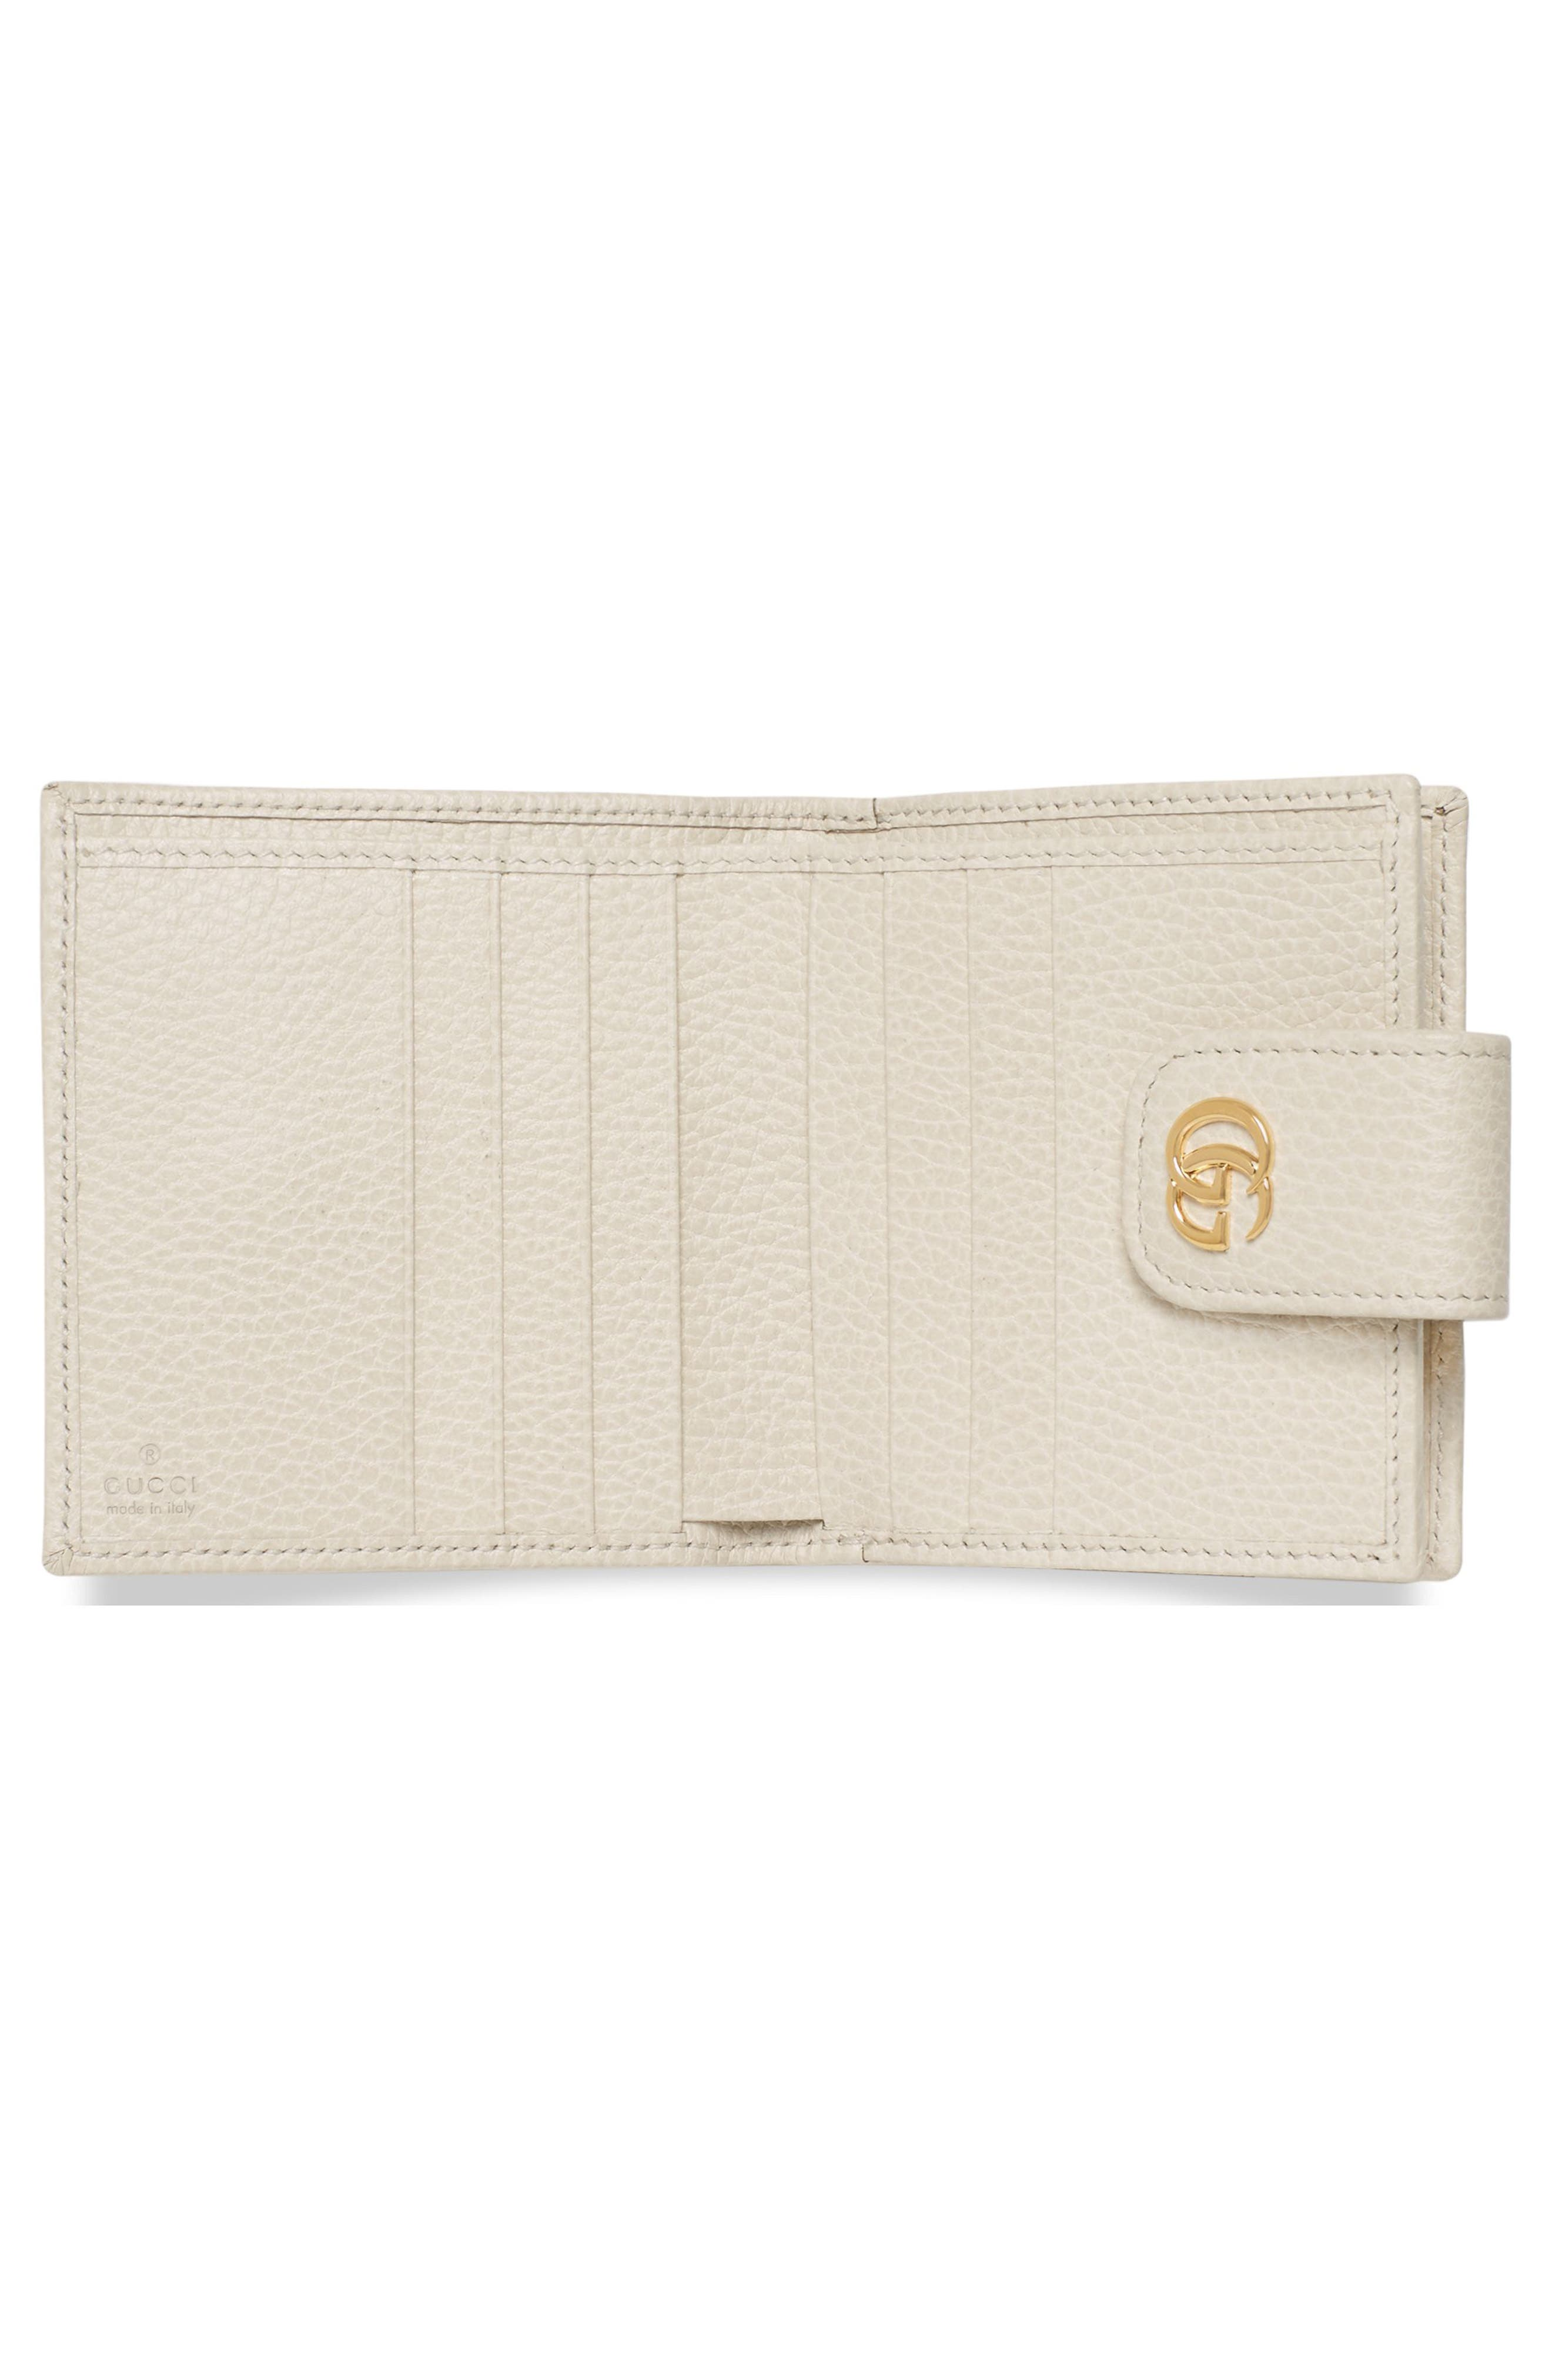 GG Marmont Leather Wallet,                             Alternate thumbnail 3, color,                             Mystic White